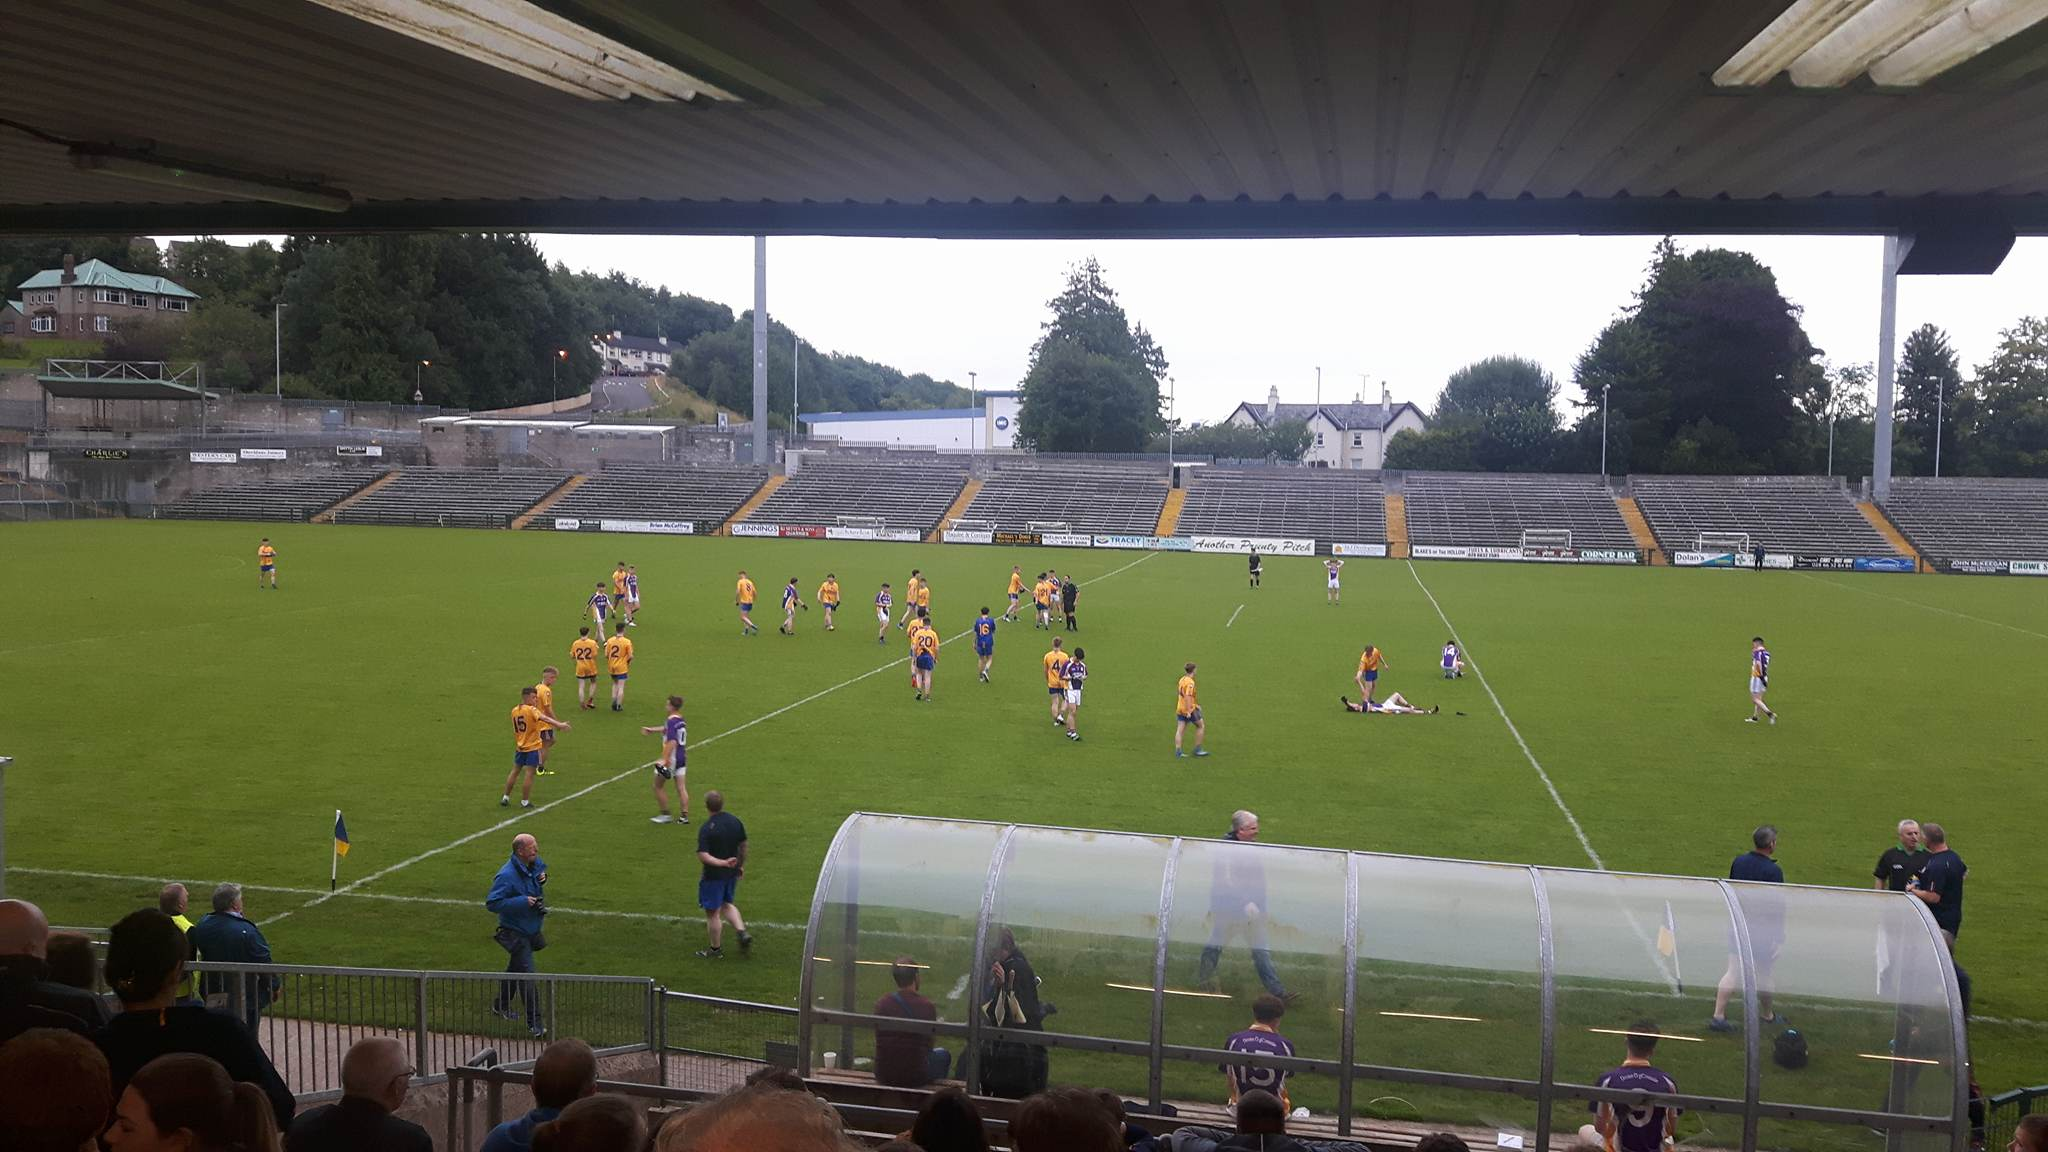 Enniskillen Gaels make it 3 in a row